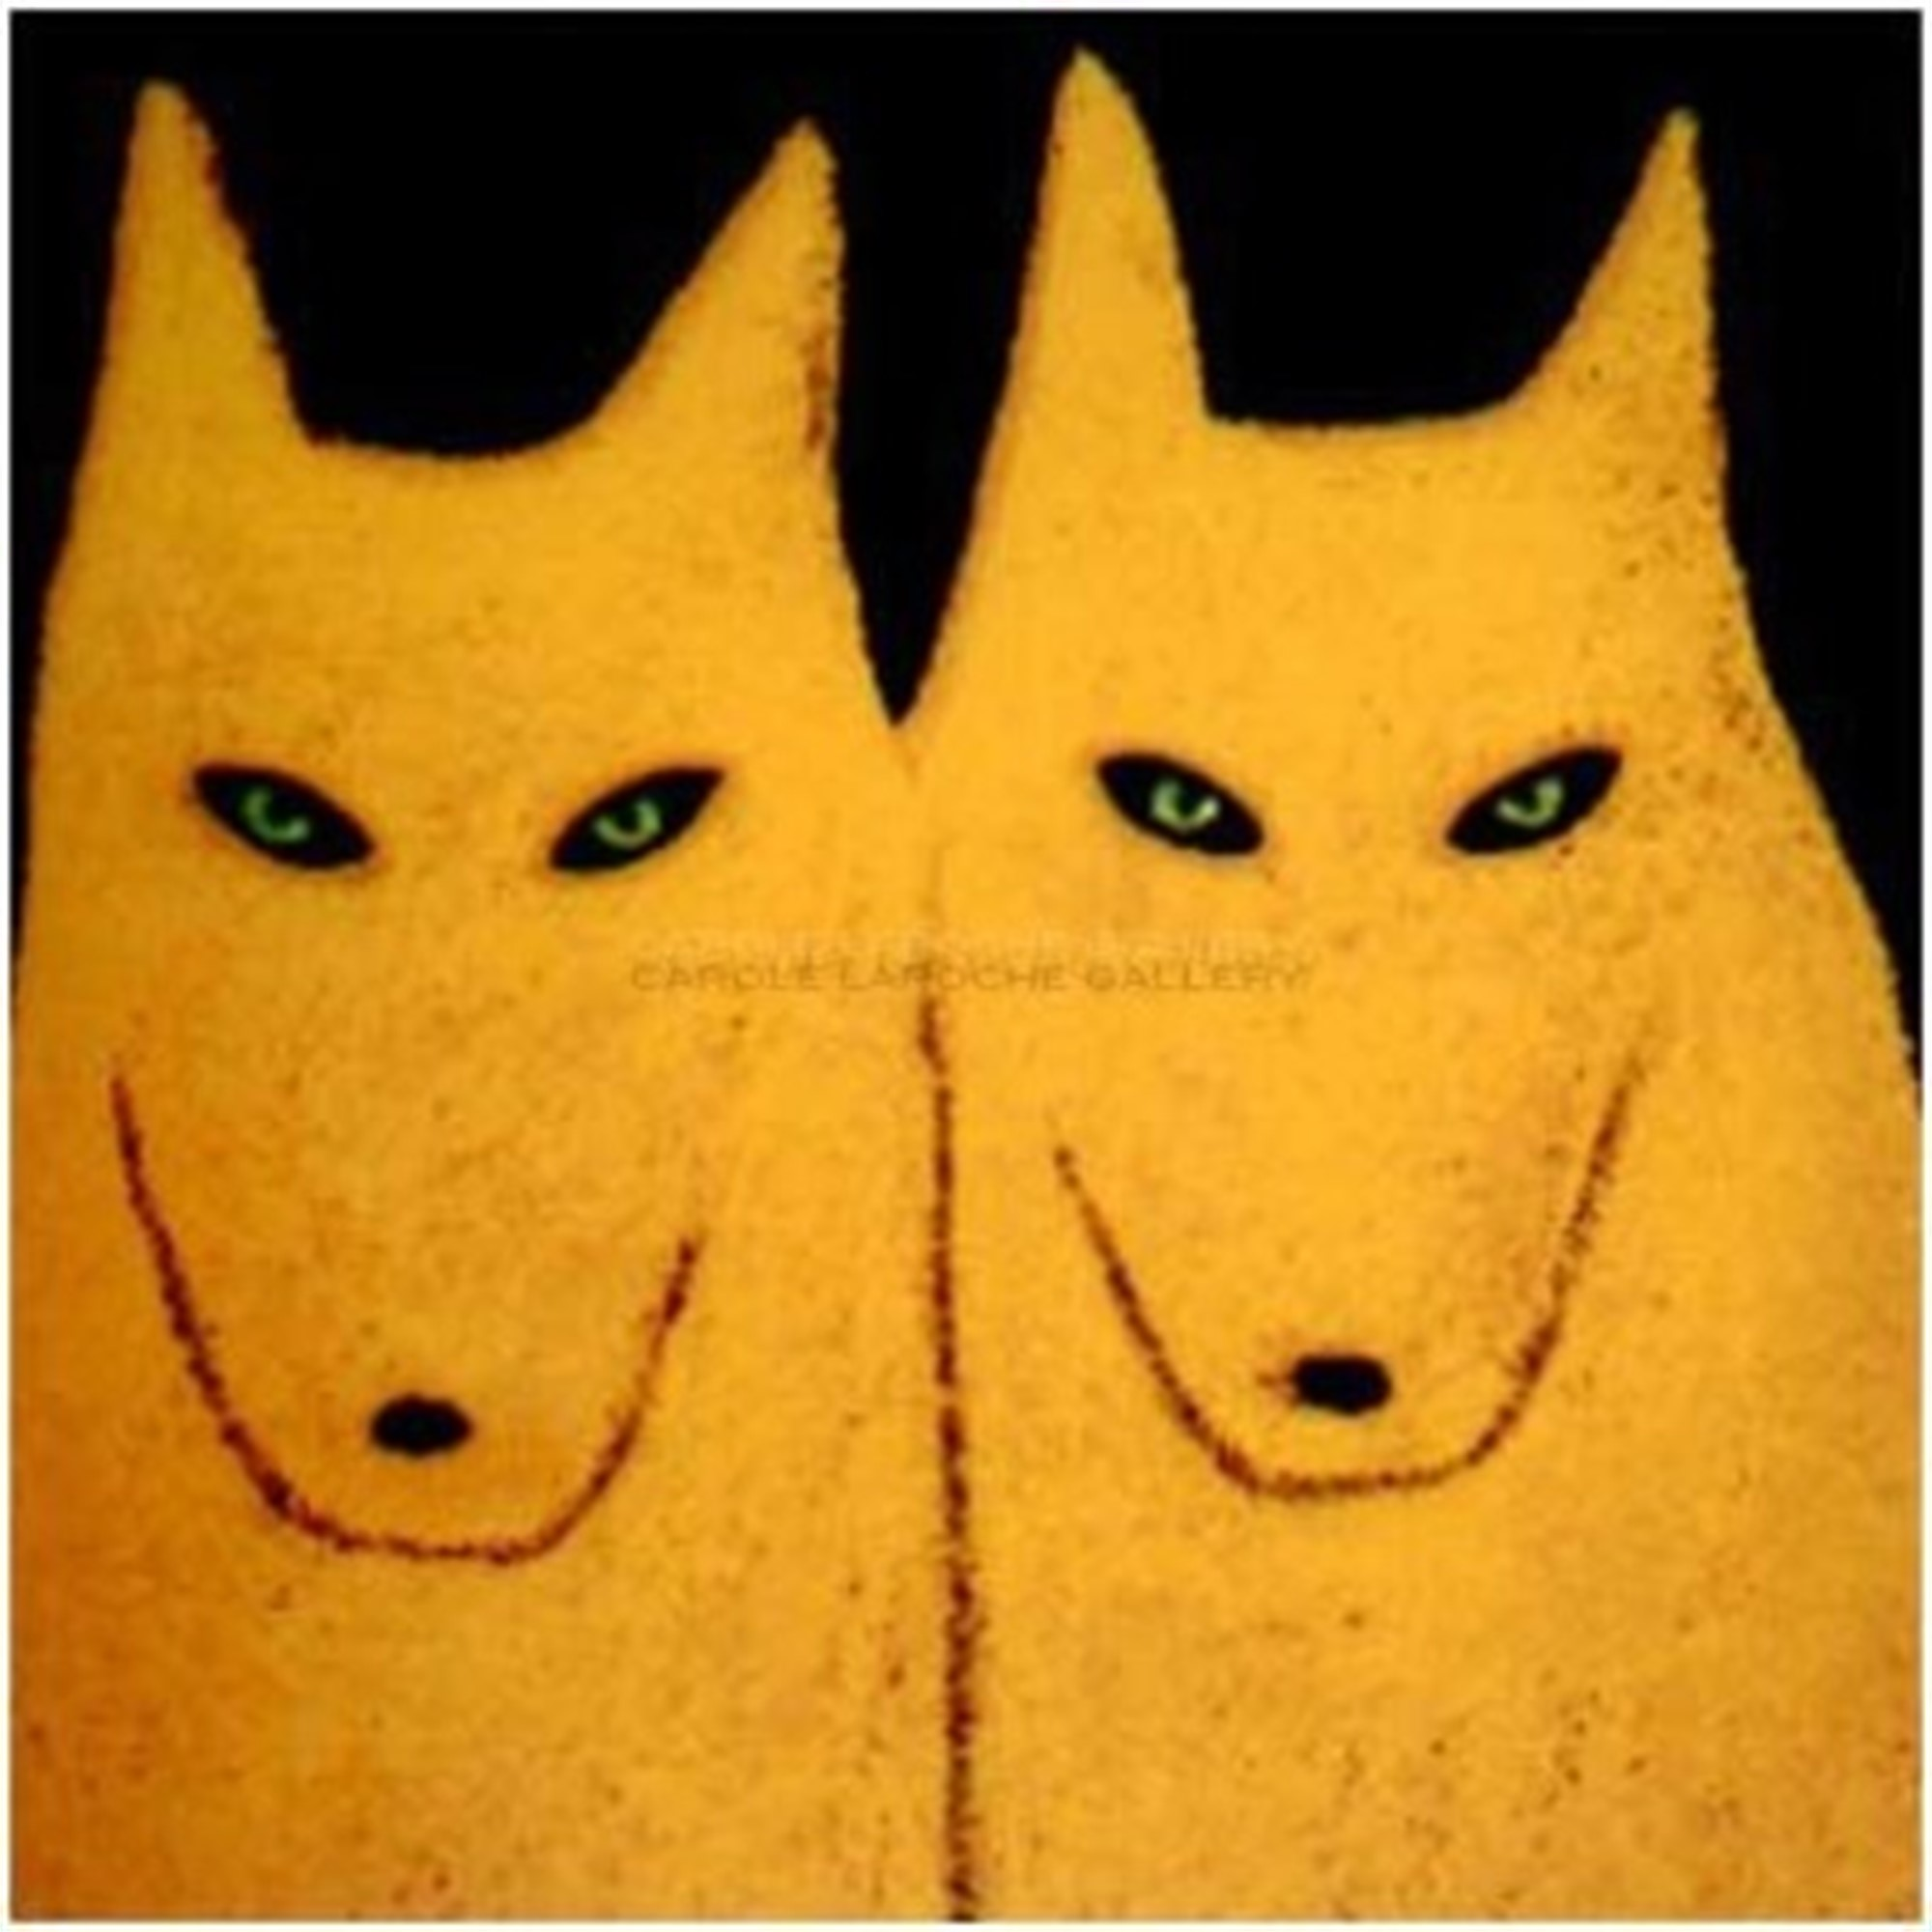 Two Yellow Wolves by Carole LaRoche